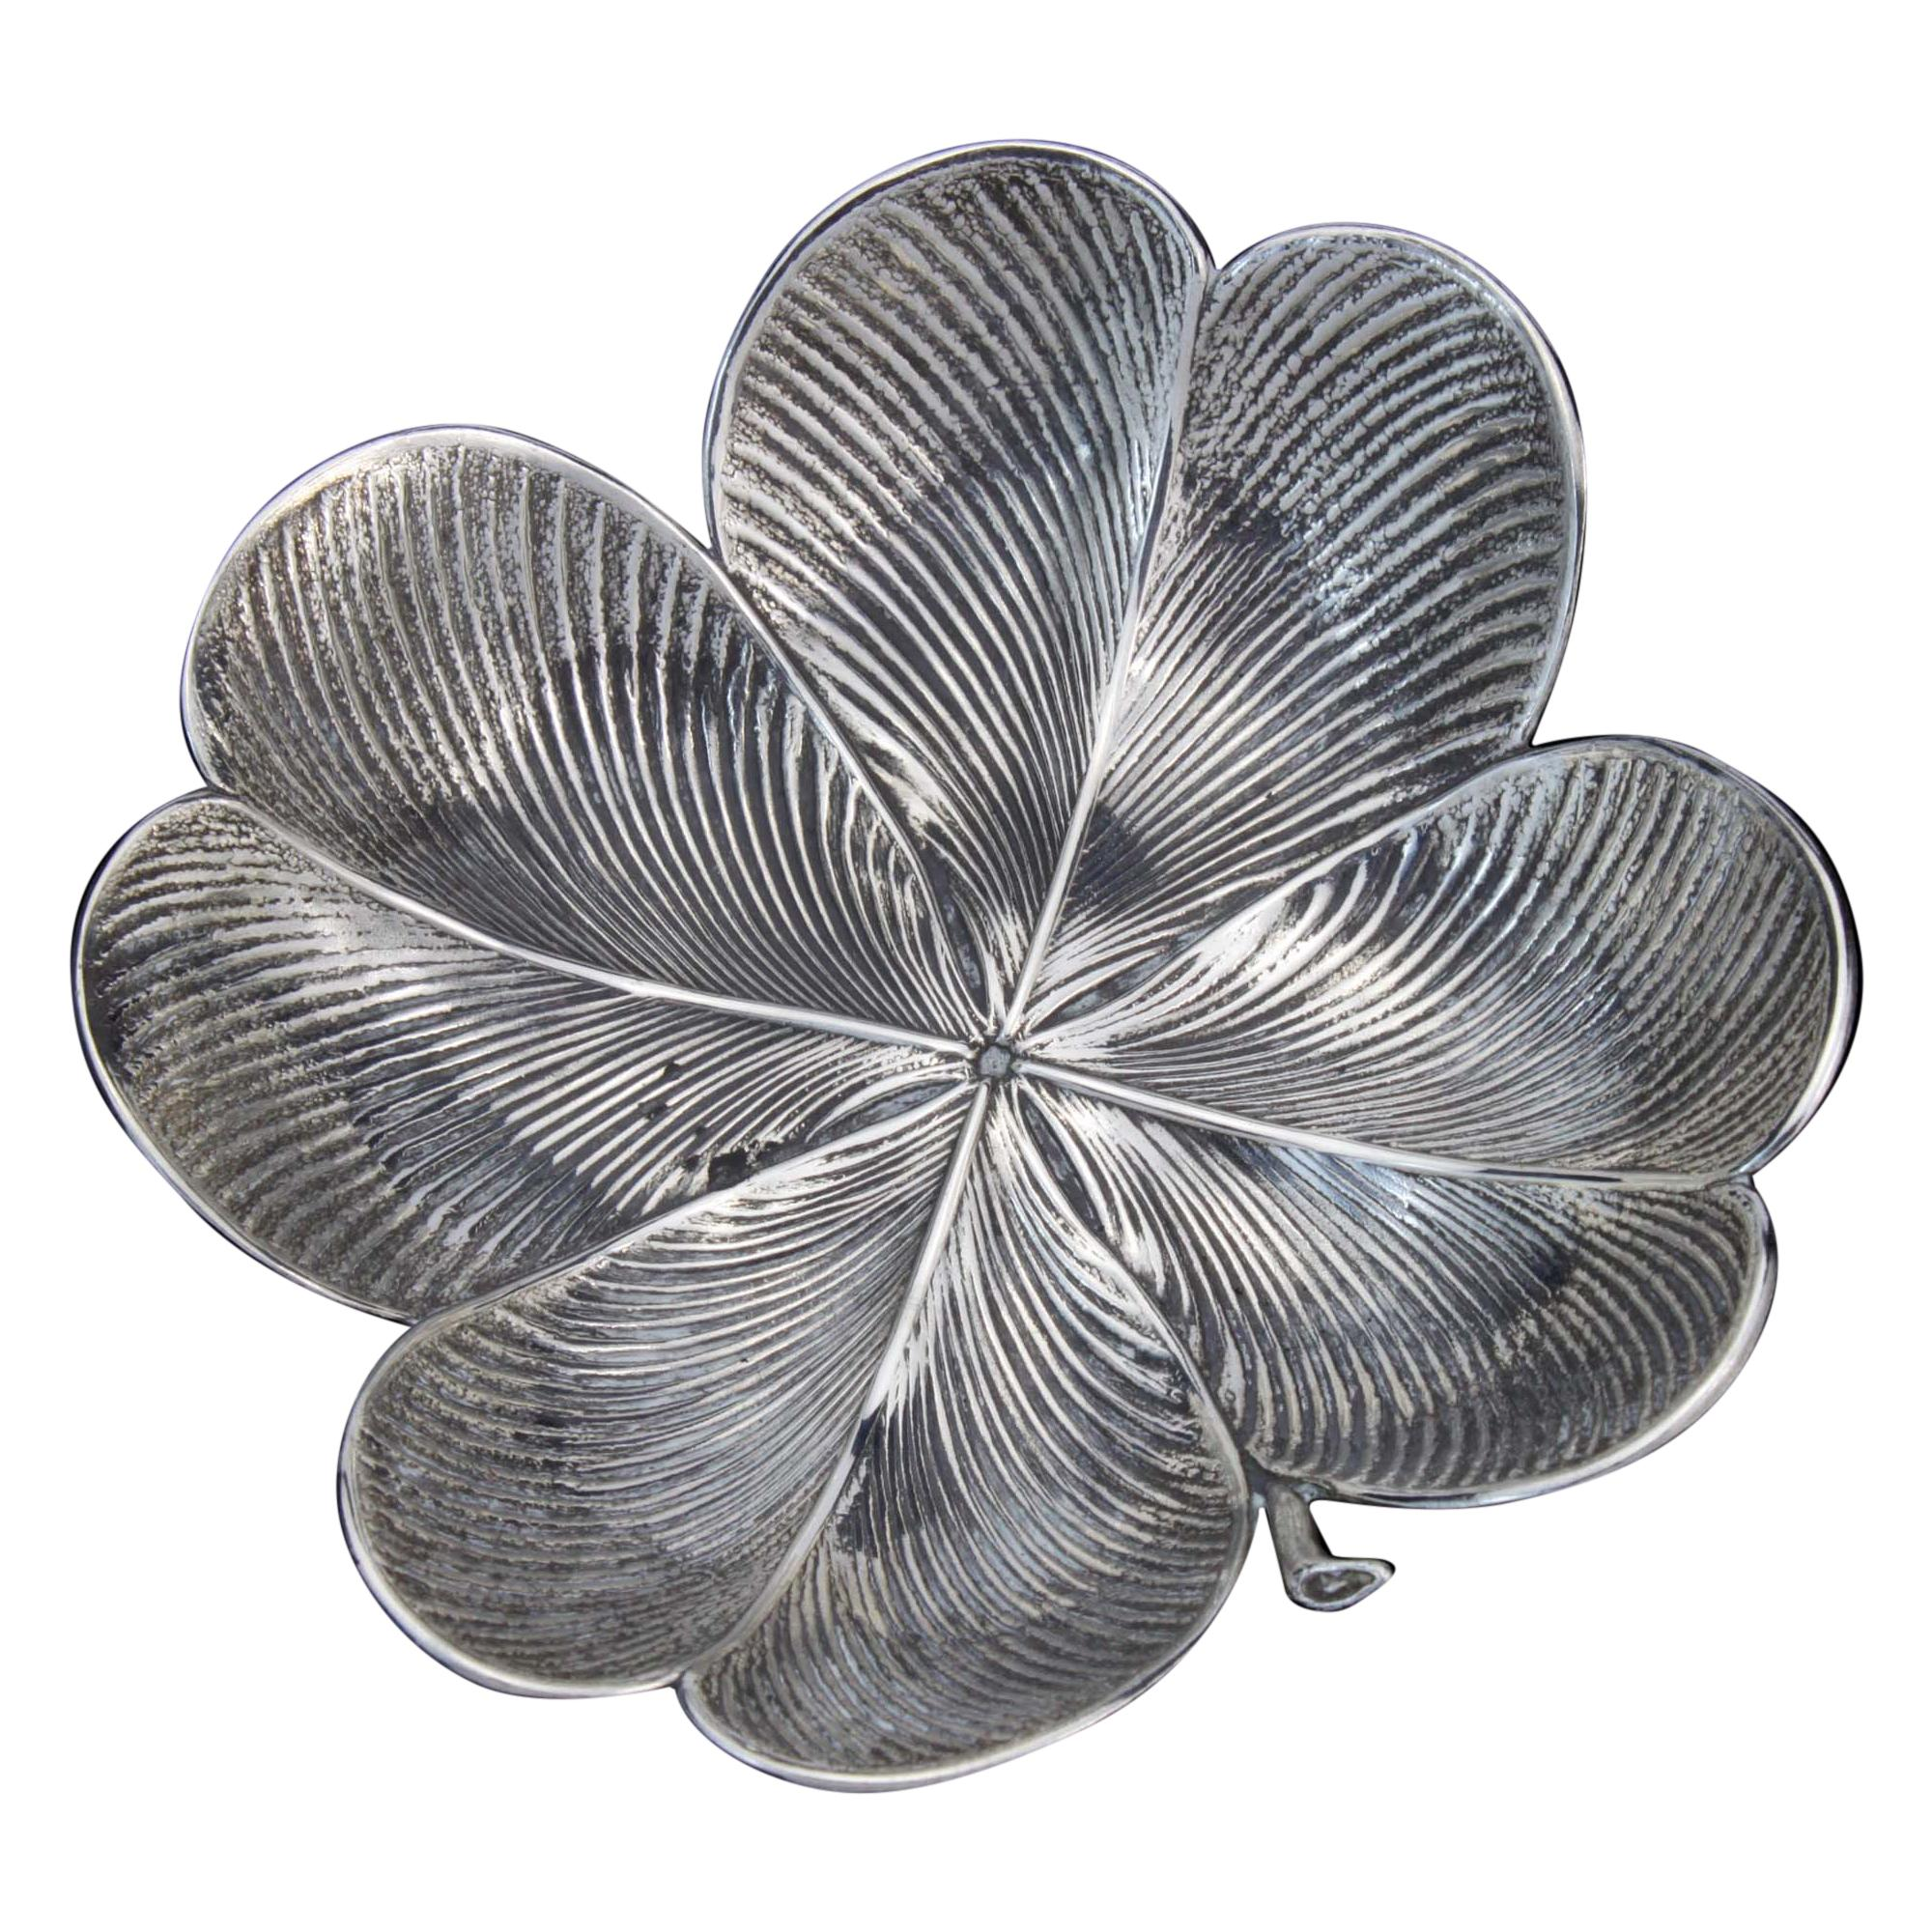 Vintage 925 Silver Clover Dish by Gianmaria Buccellati